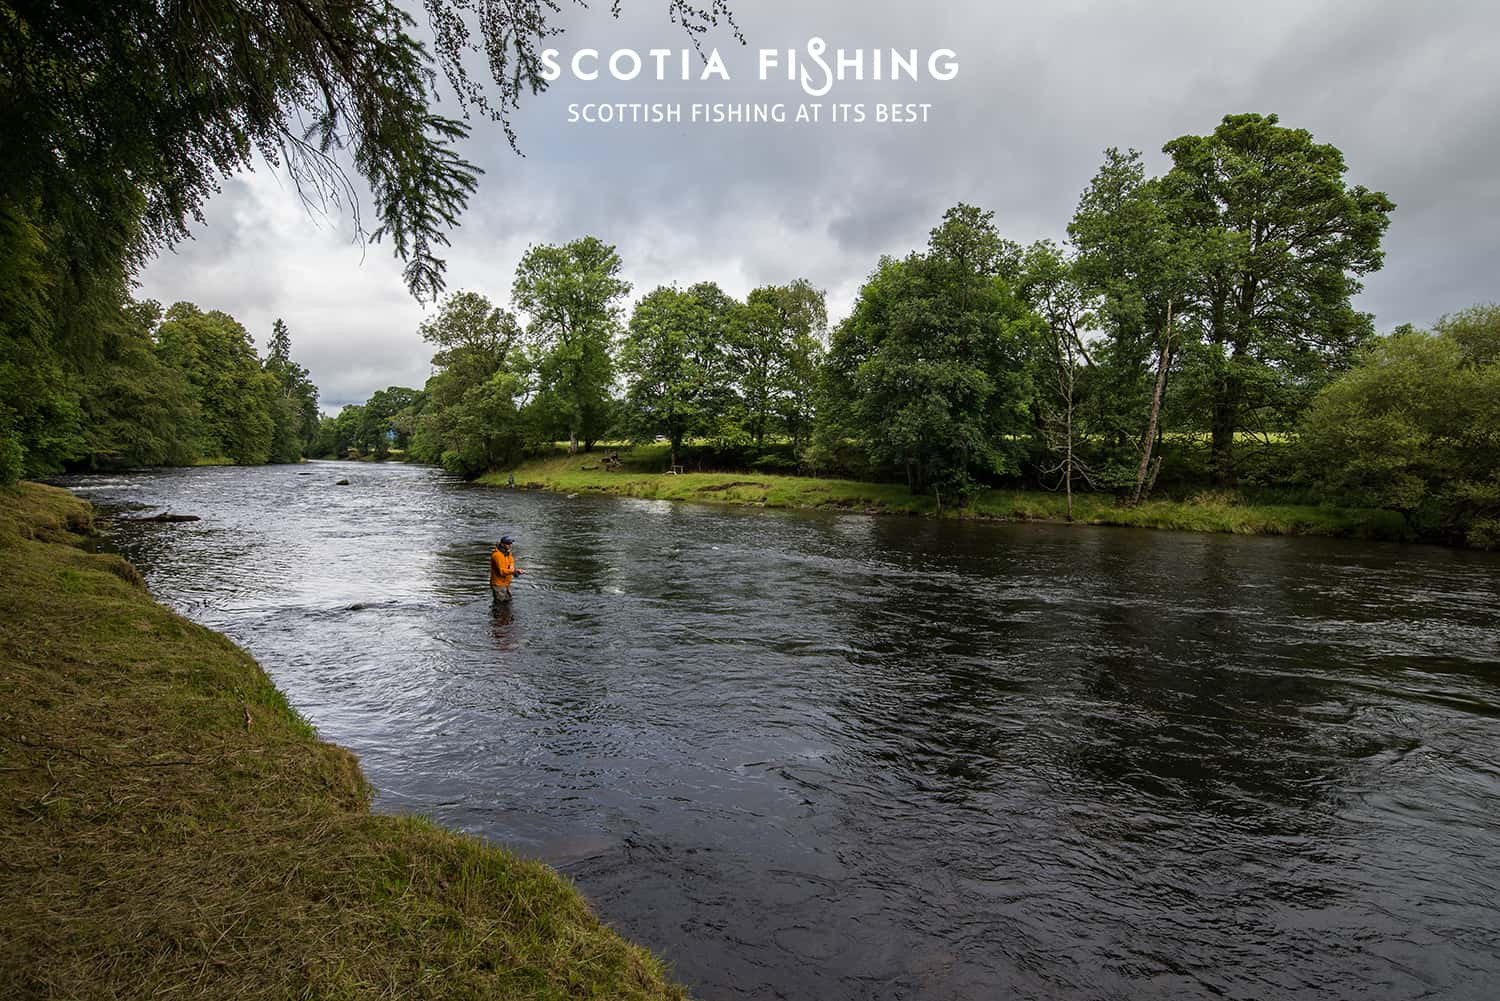 fishing-trips-near-loch-lomond-cameron-house